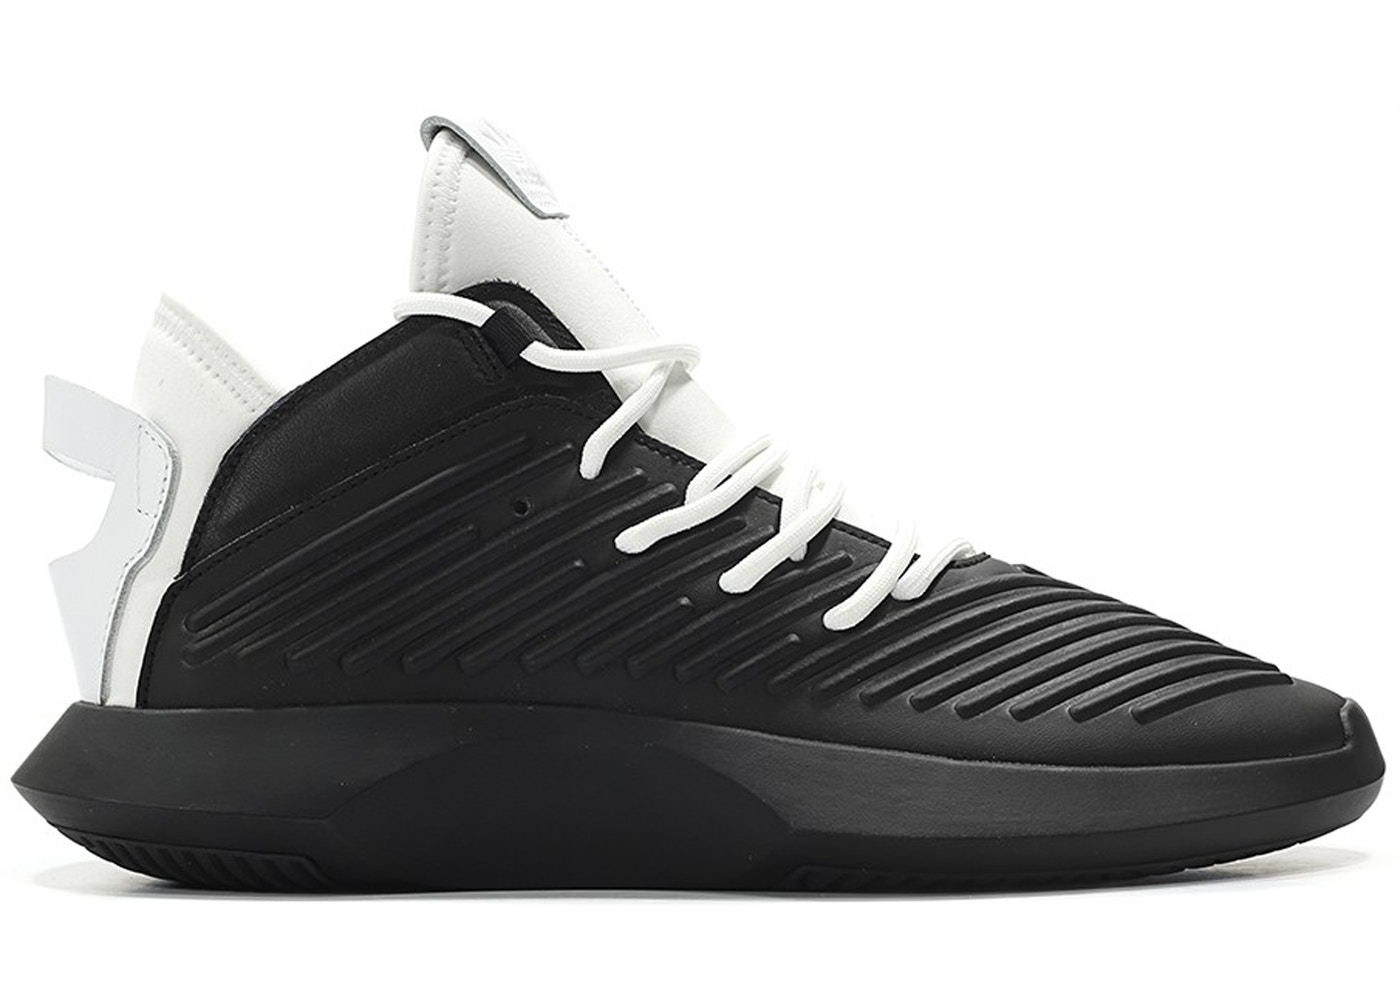 finest selection c5a82 03ad9 Sell. or Ask. Size 15. View All Bids. adidas Crazy 1 Adv Black White